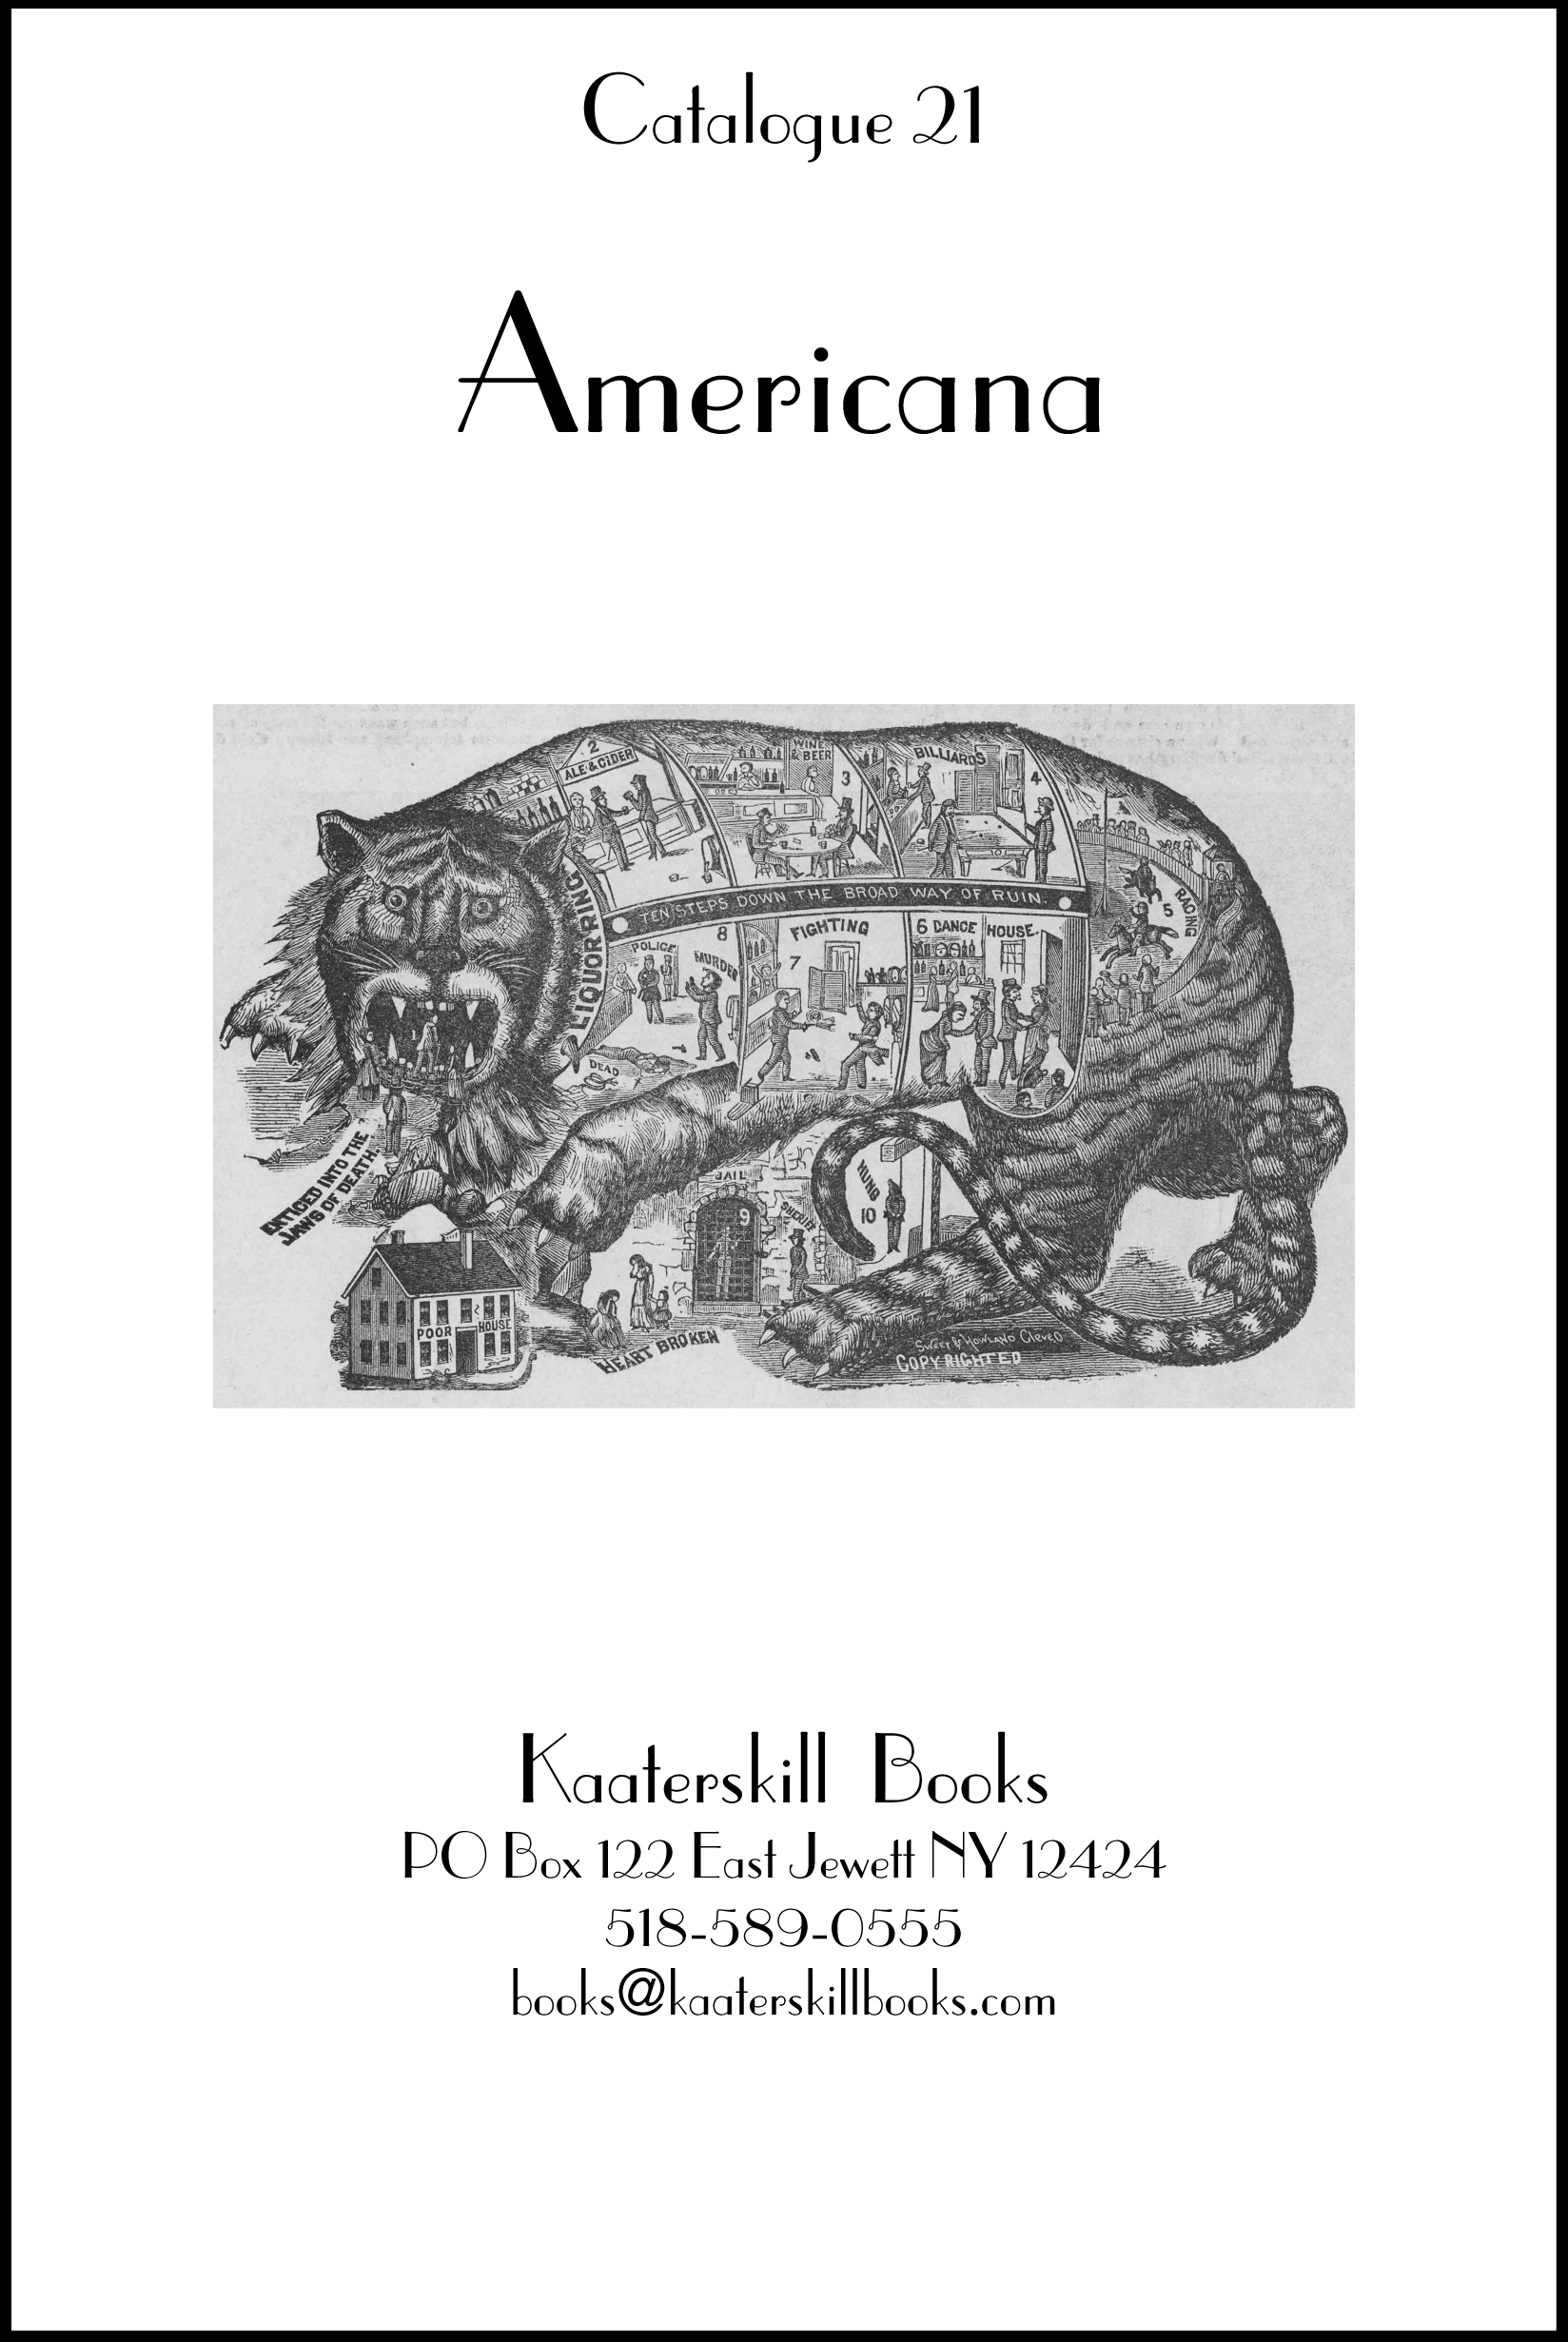 Catalogue 21: Americana